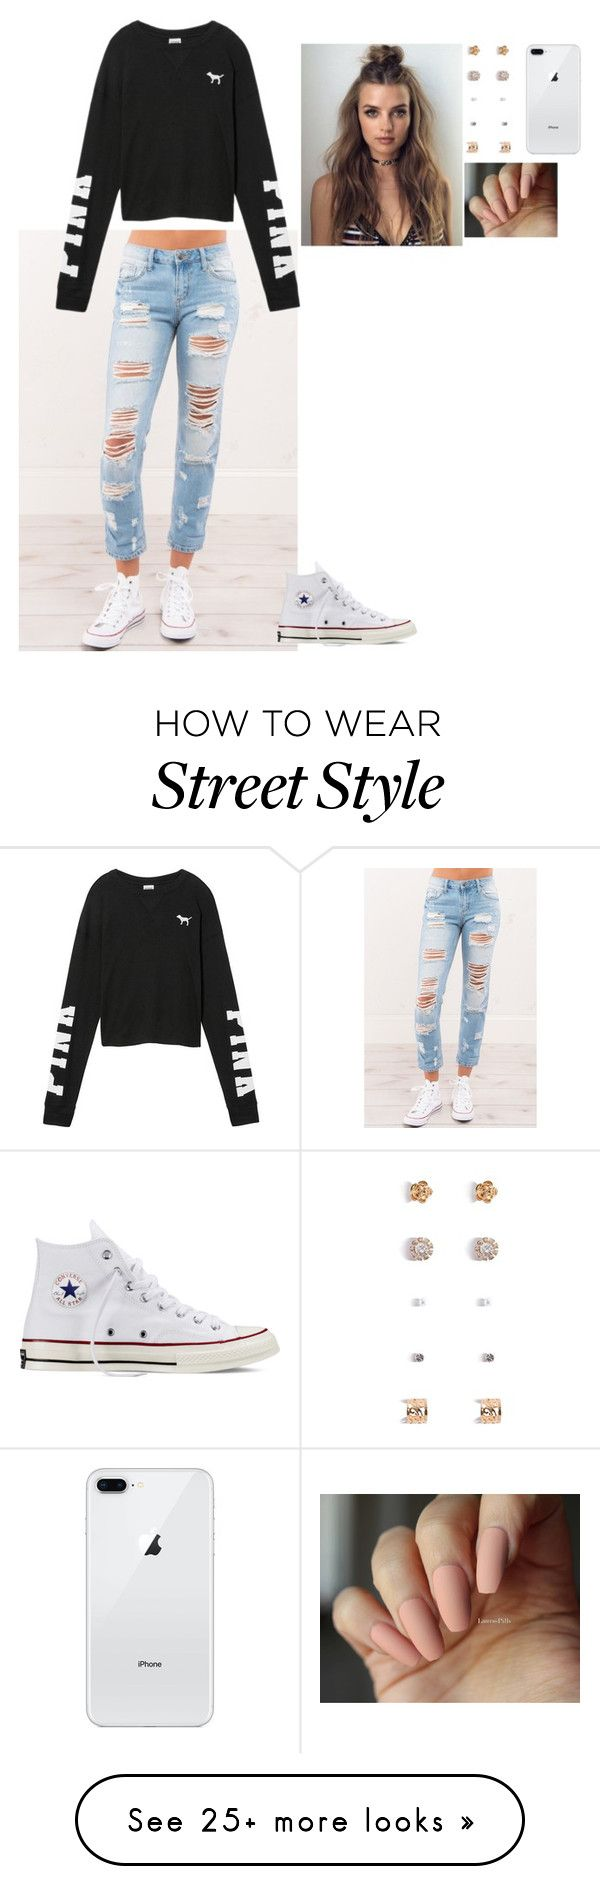 """Really..."" by elansley22 on Polyvore featuring Victoria's Secret, Forever 21 and Converse"